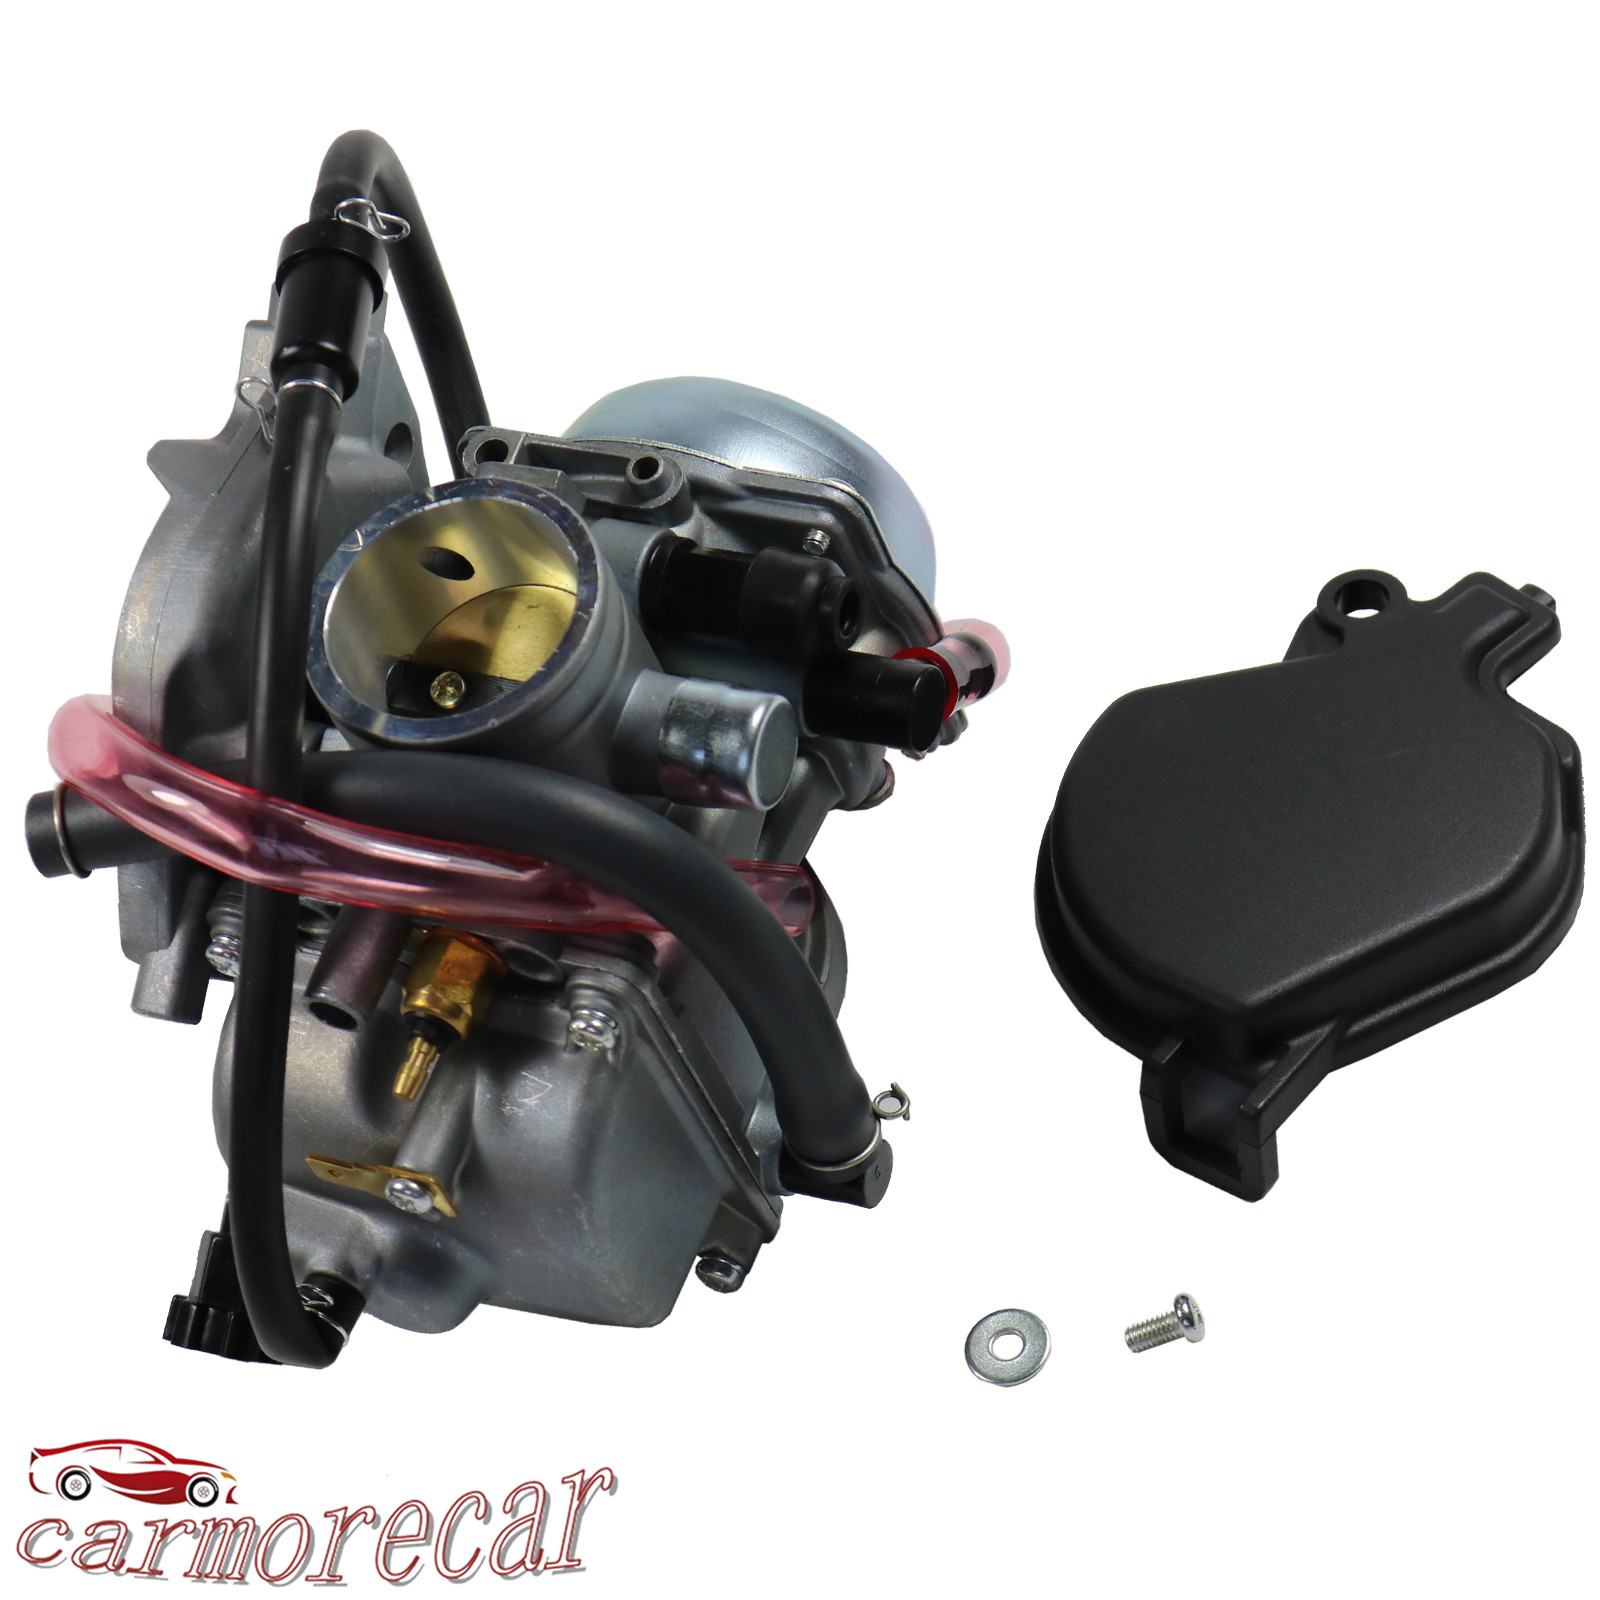 【New Arrival】 Carburetor for Suzuki Vinson 500 LTF500F 4x4 Manual 2005-2007